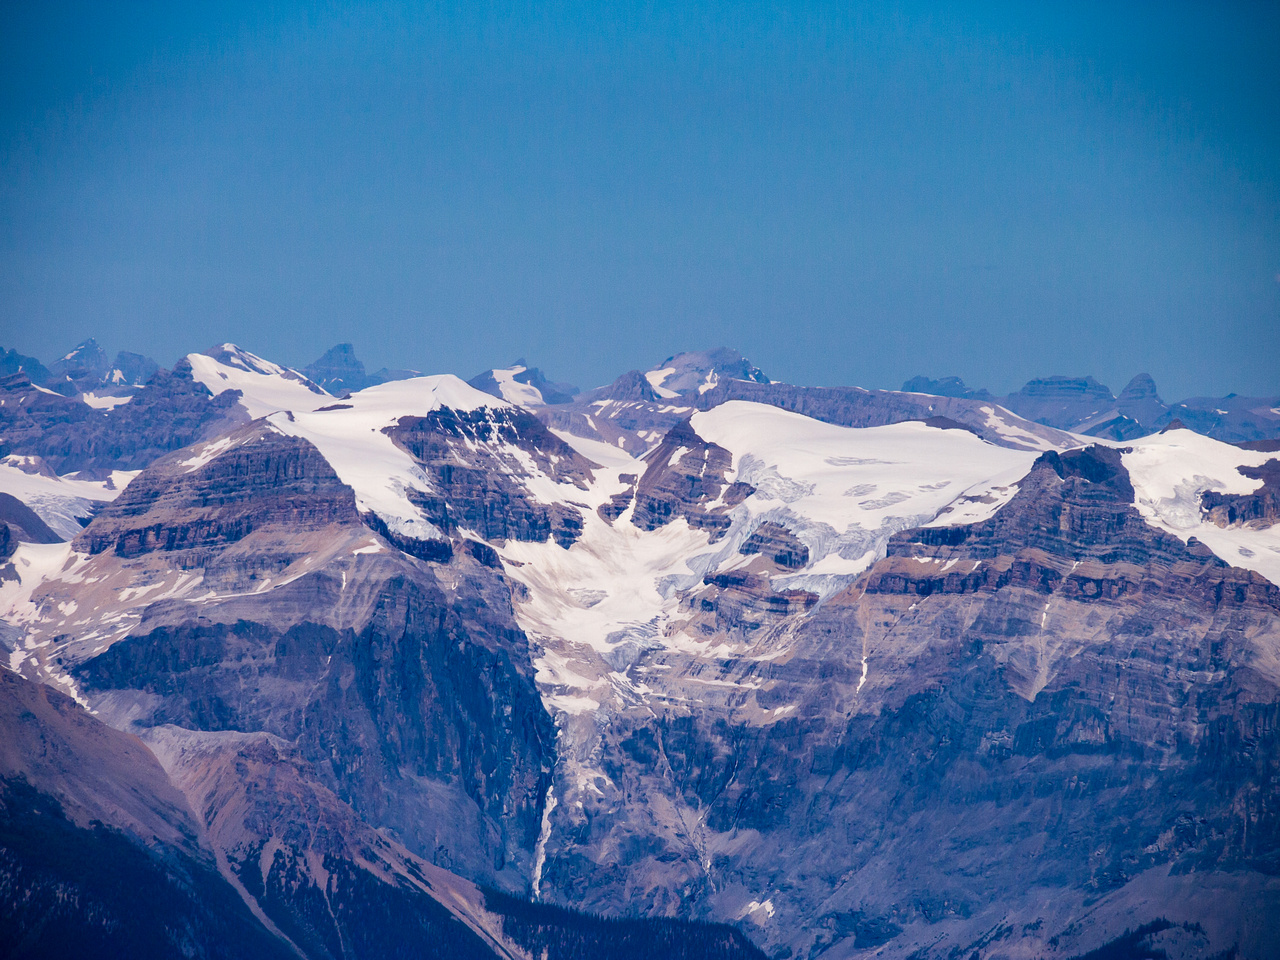 Looking over The President (L) and Vice President (R) towards Des Poilus, Yoho and Collie.